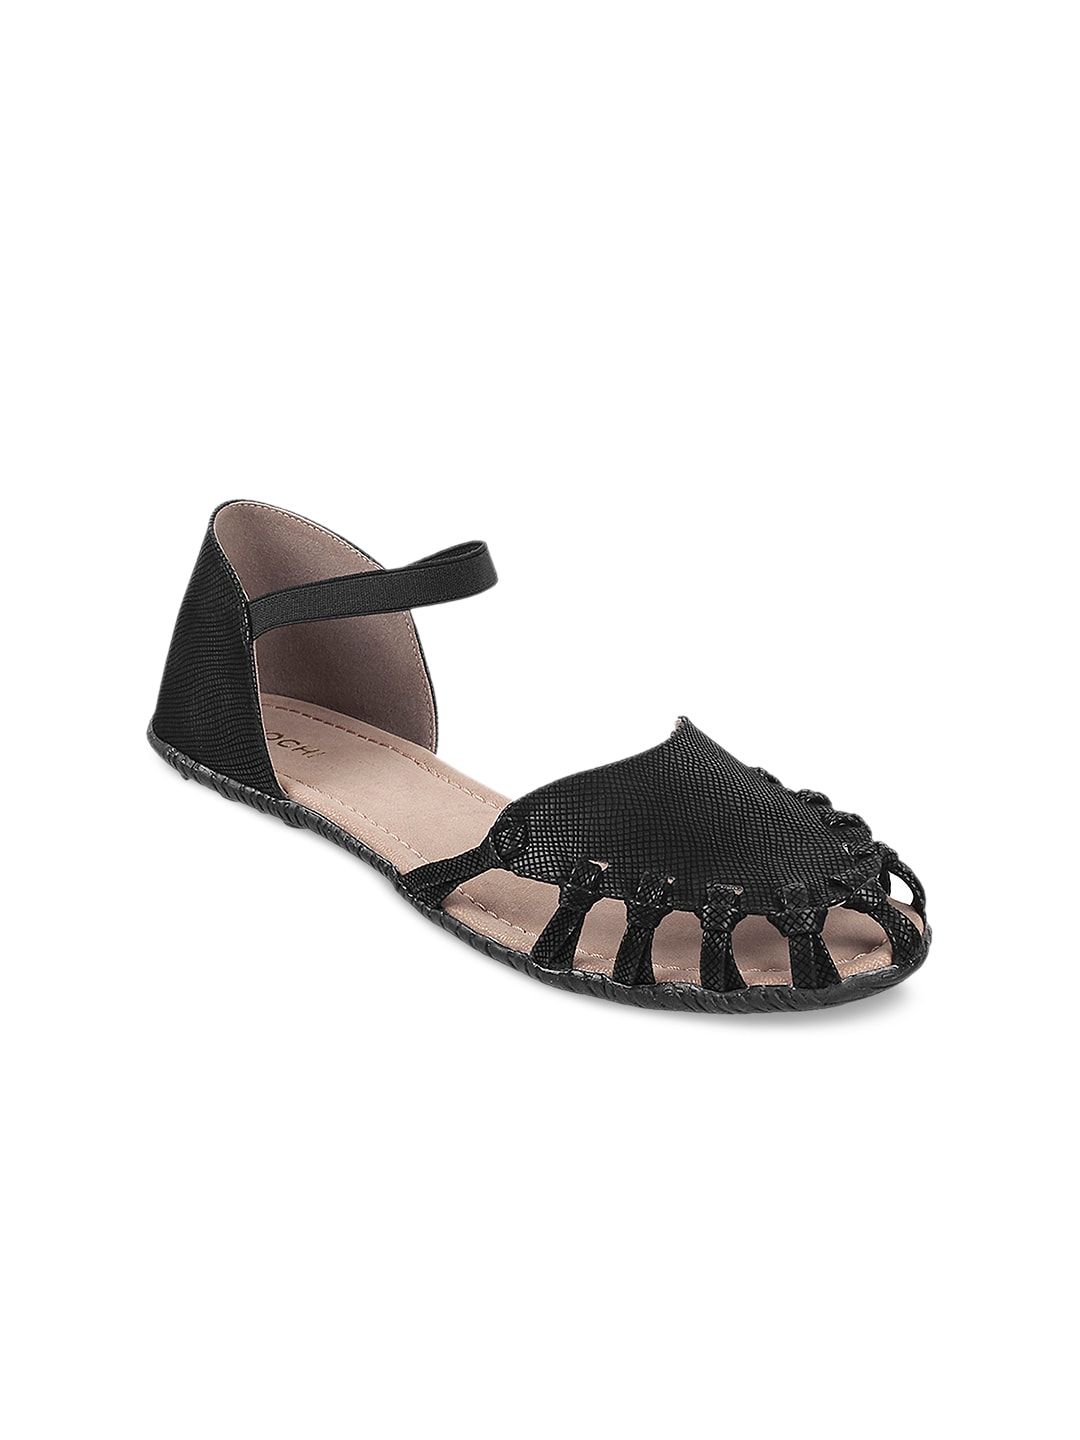 88ca49df7485 Mochi Shoes - Shop Online for Mochi Shoes in India